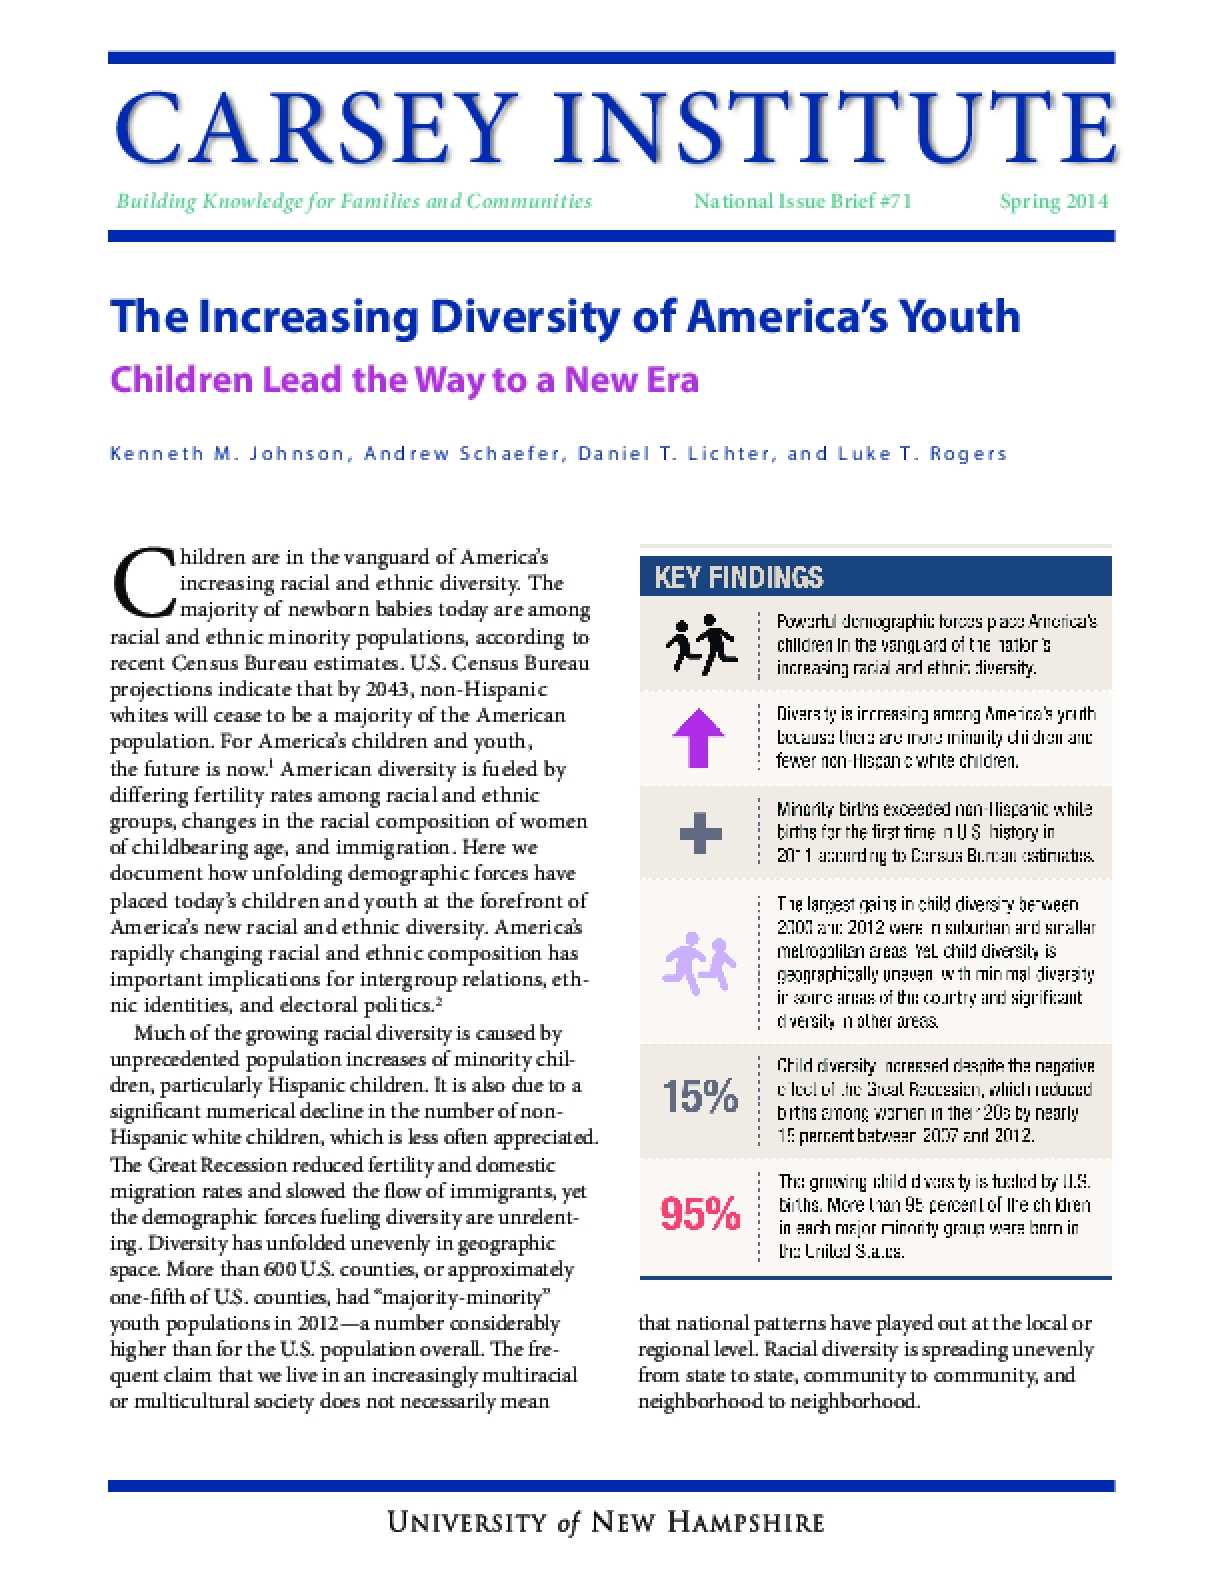 The Increasing Diversity of America's Youth: Children Lead the Way to a New Era